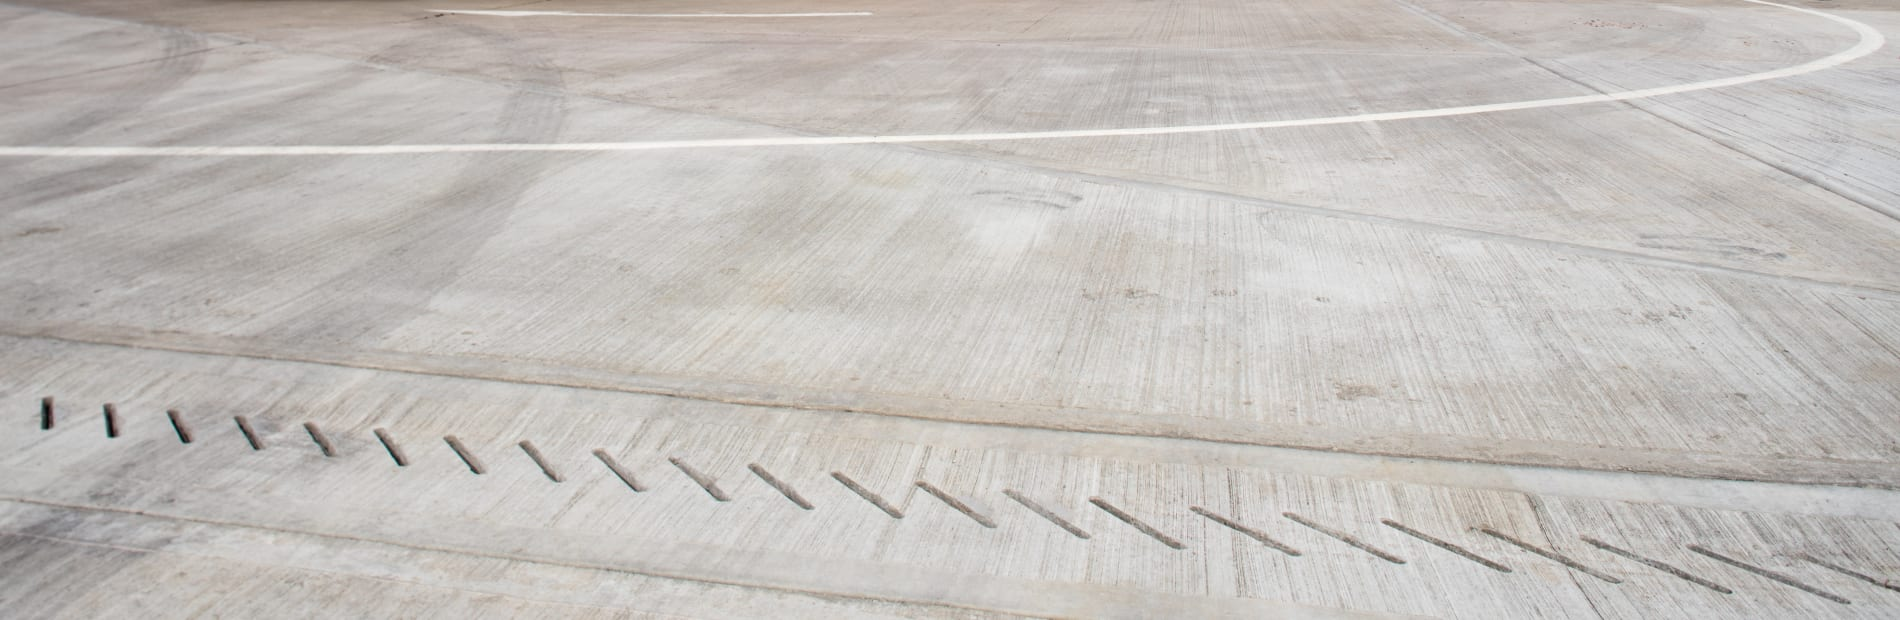 marshalls drexus xl high capacity linear drainage system at wednesbury distribution centre